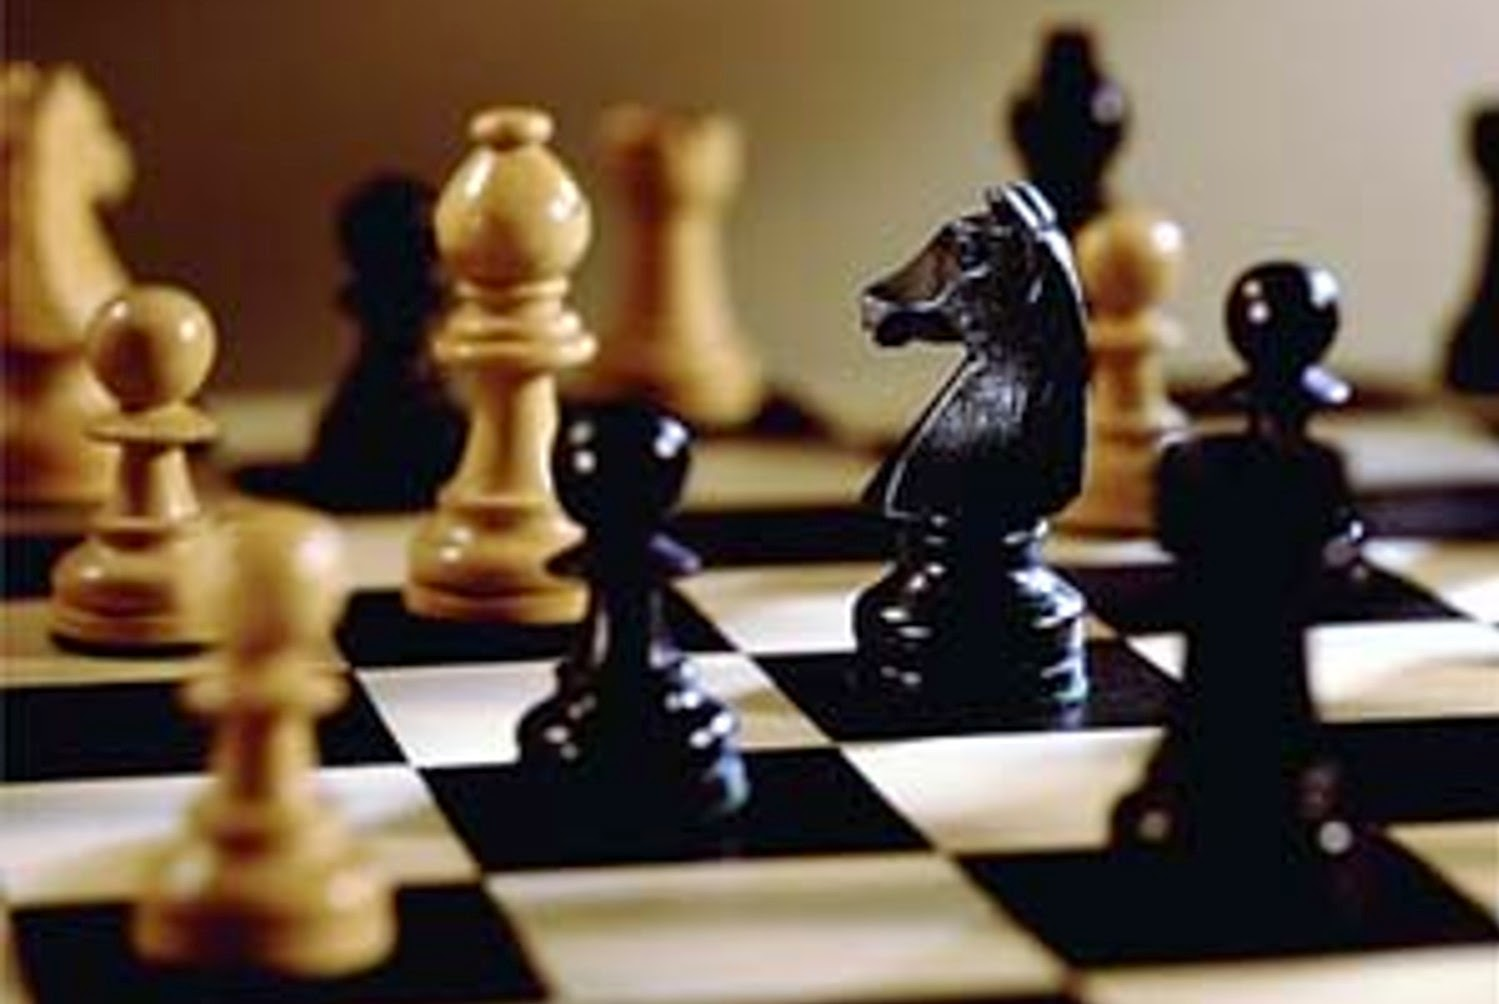 Games Galore: How to Play Chess